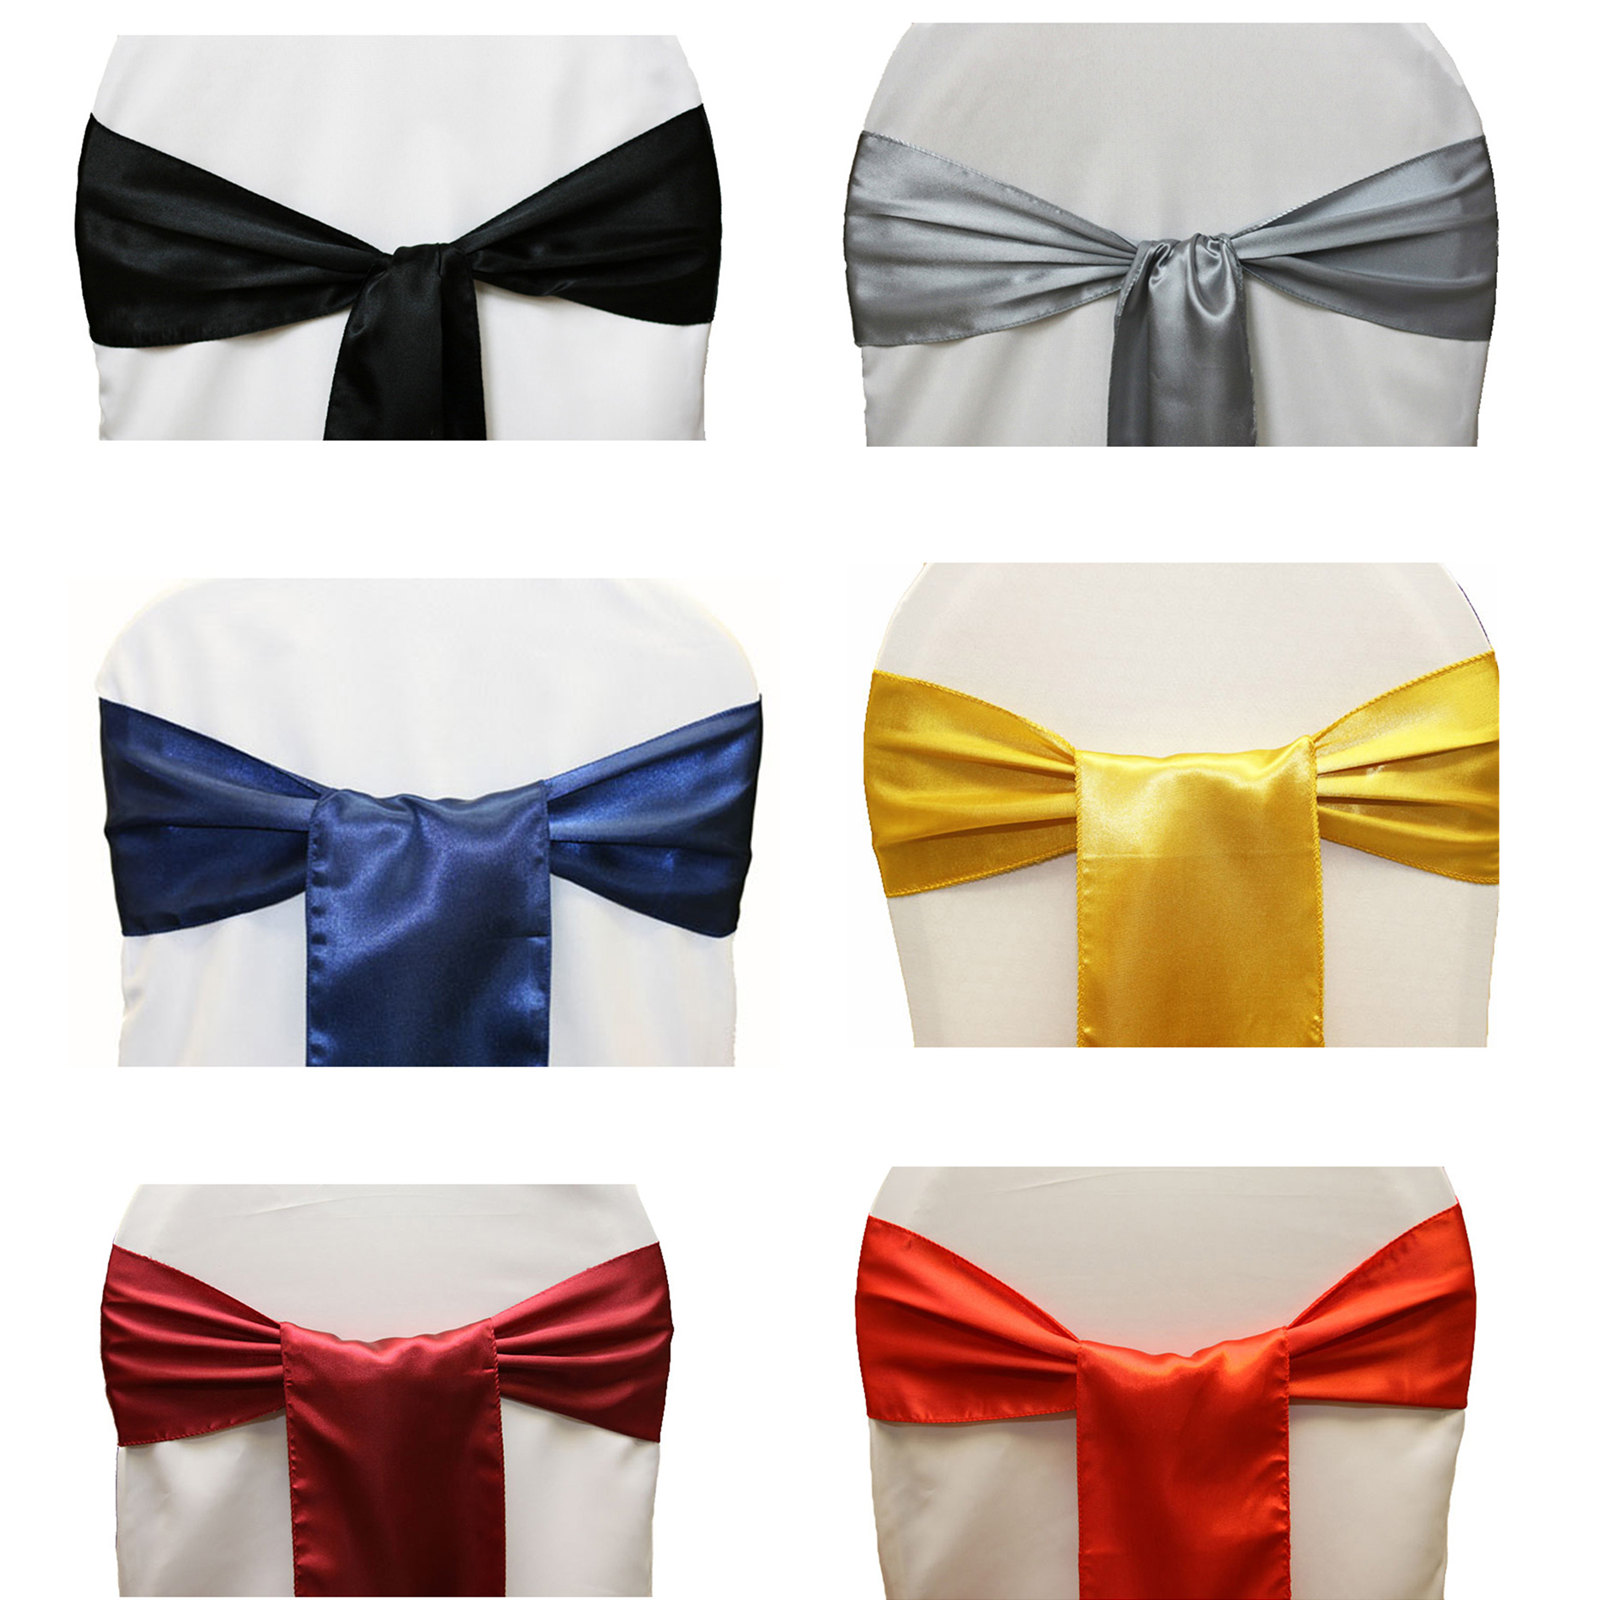 50pcs 15x 275cm Satin Chair Sashes Bands Bow Ties Butterfly Cover For Wedding Decoration Home Textile